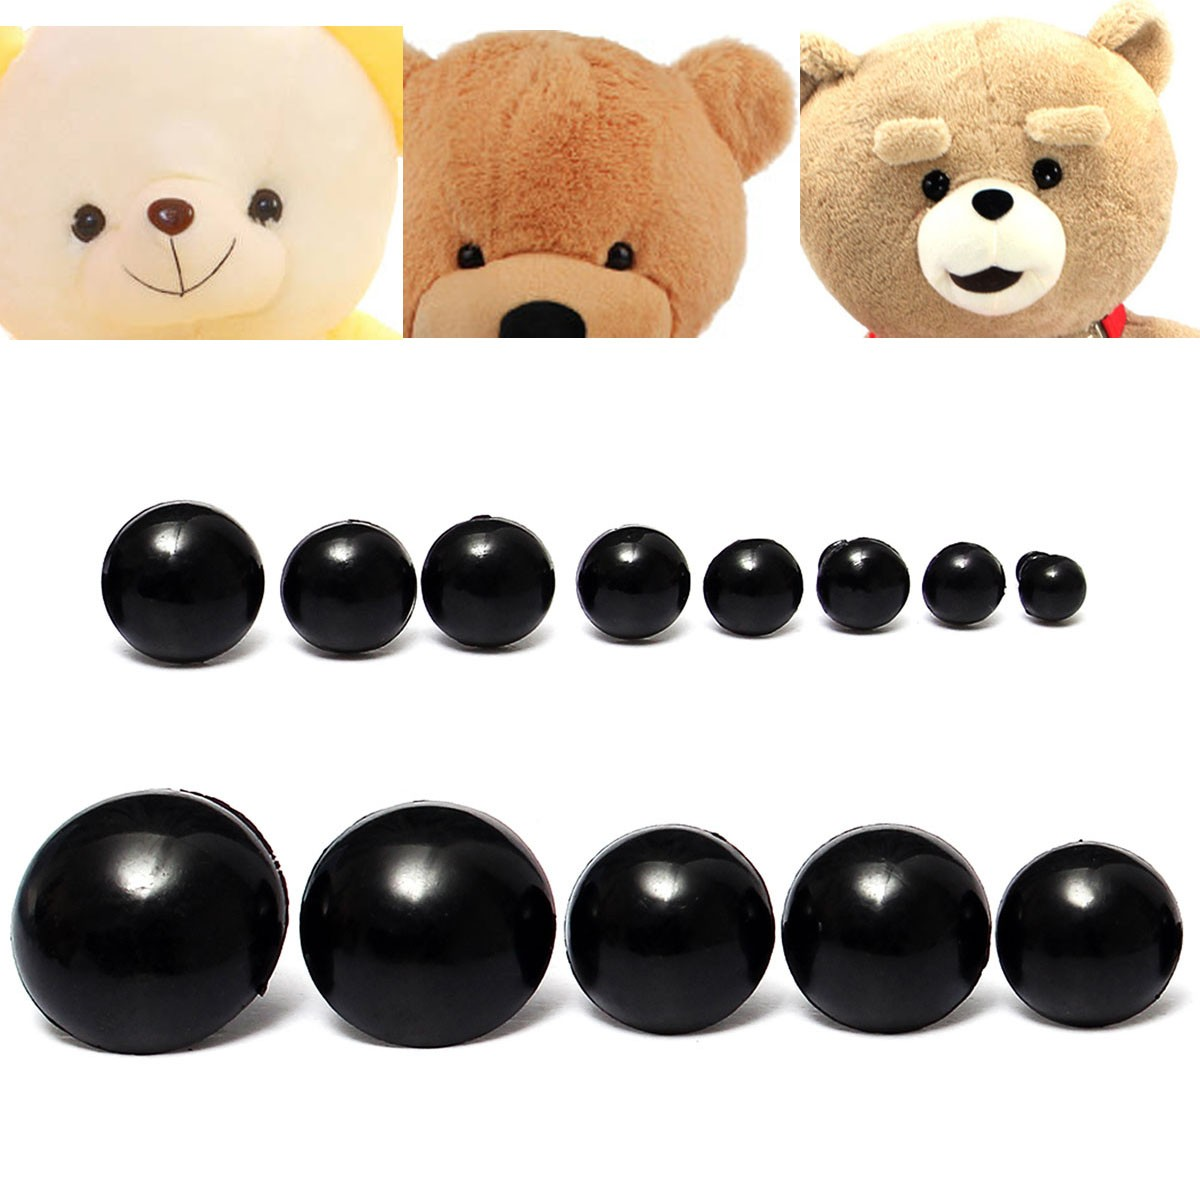 Buy 156 to 24mm Children Kid Black Plastic Safety Eyes Washers Teddy Bear Doll Animal DIY Case Toys